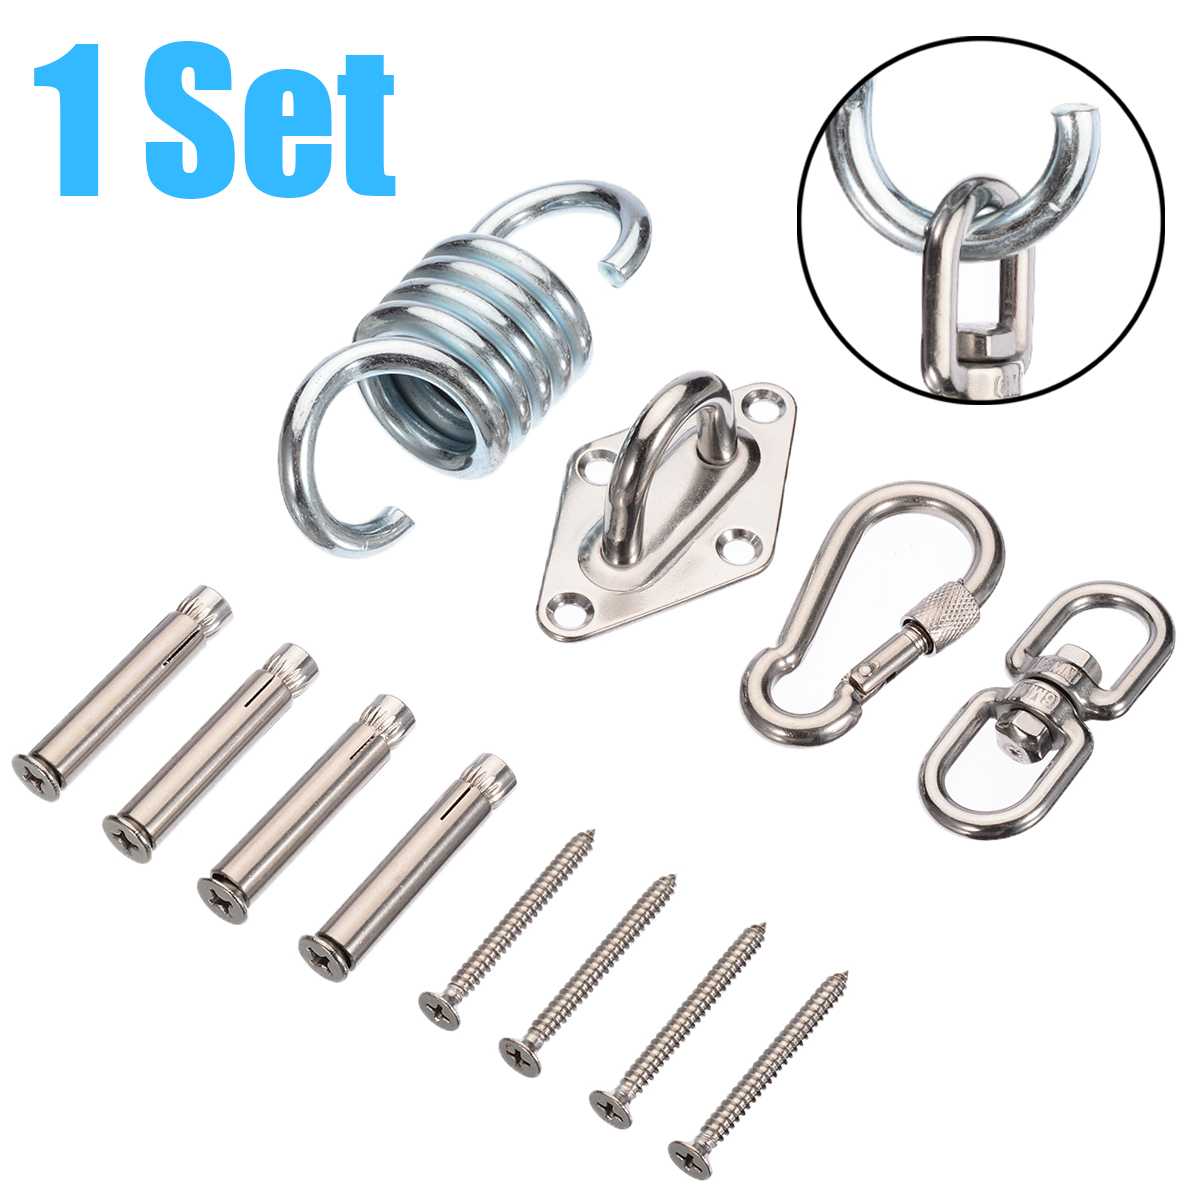 6 Pcs Hanging Chair Hardware Hammock Hook Metal Suspension Swing Hook Kit Garden Swing Kit Chair Hand Tool Set Buy At The Price Of 16 30 In Aliexpress Com Imall Com